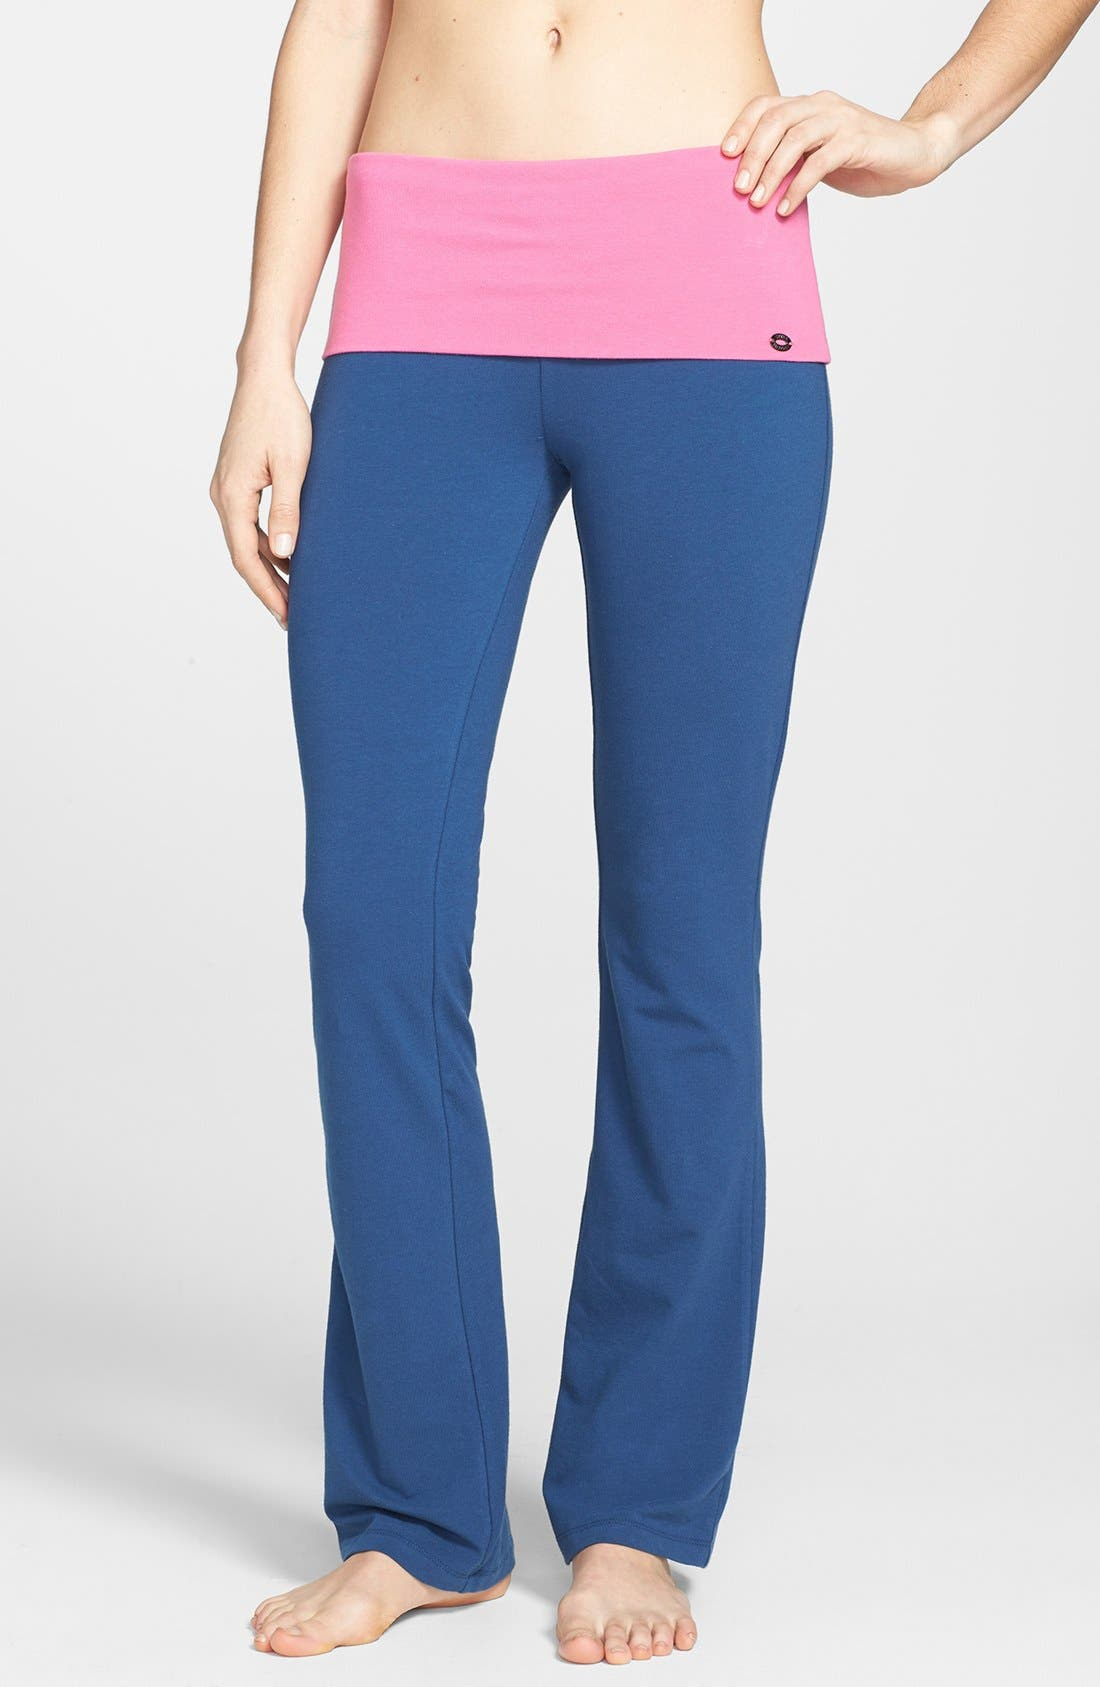 Alternate Image 1 Selected - Steve Madden 'Work It Out' Pants